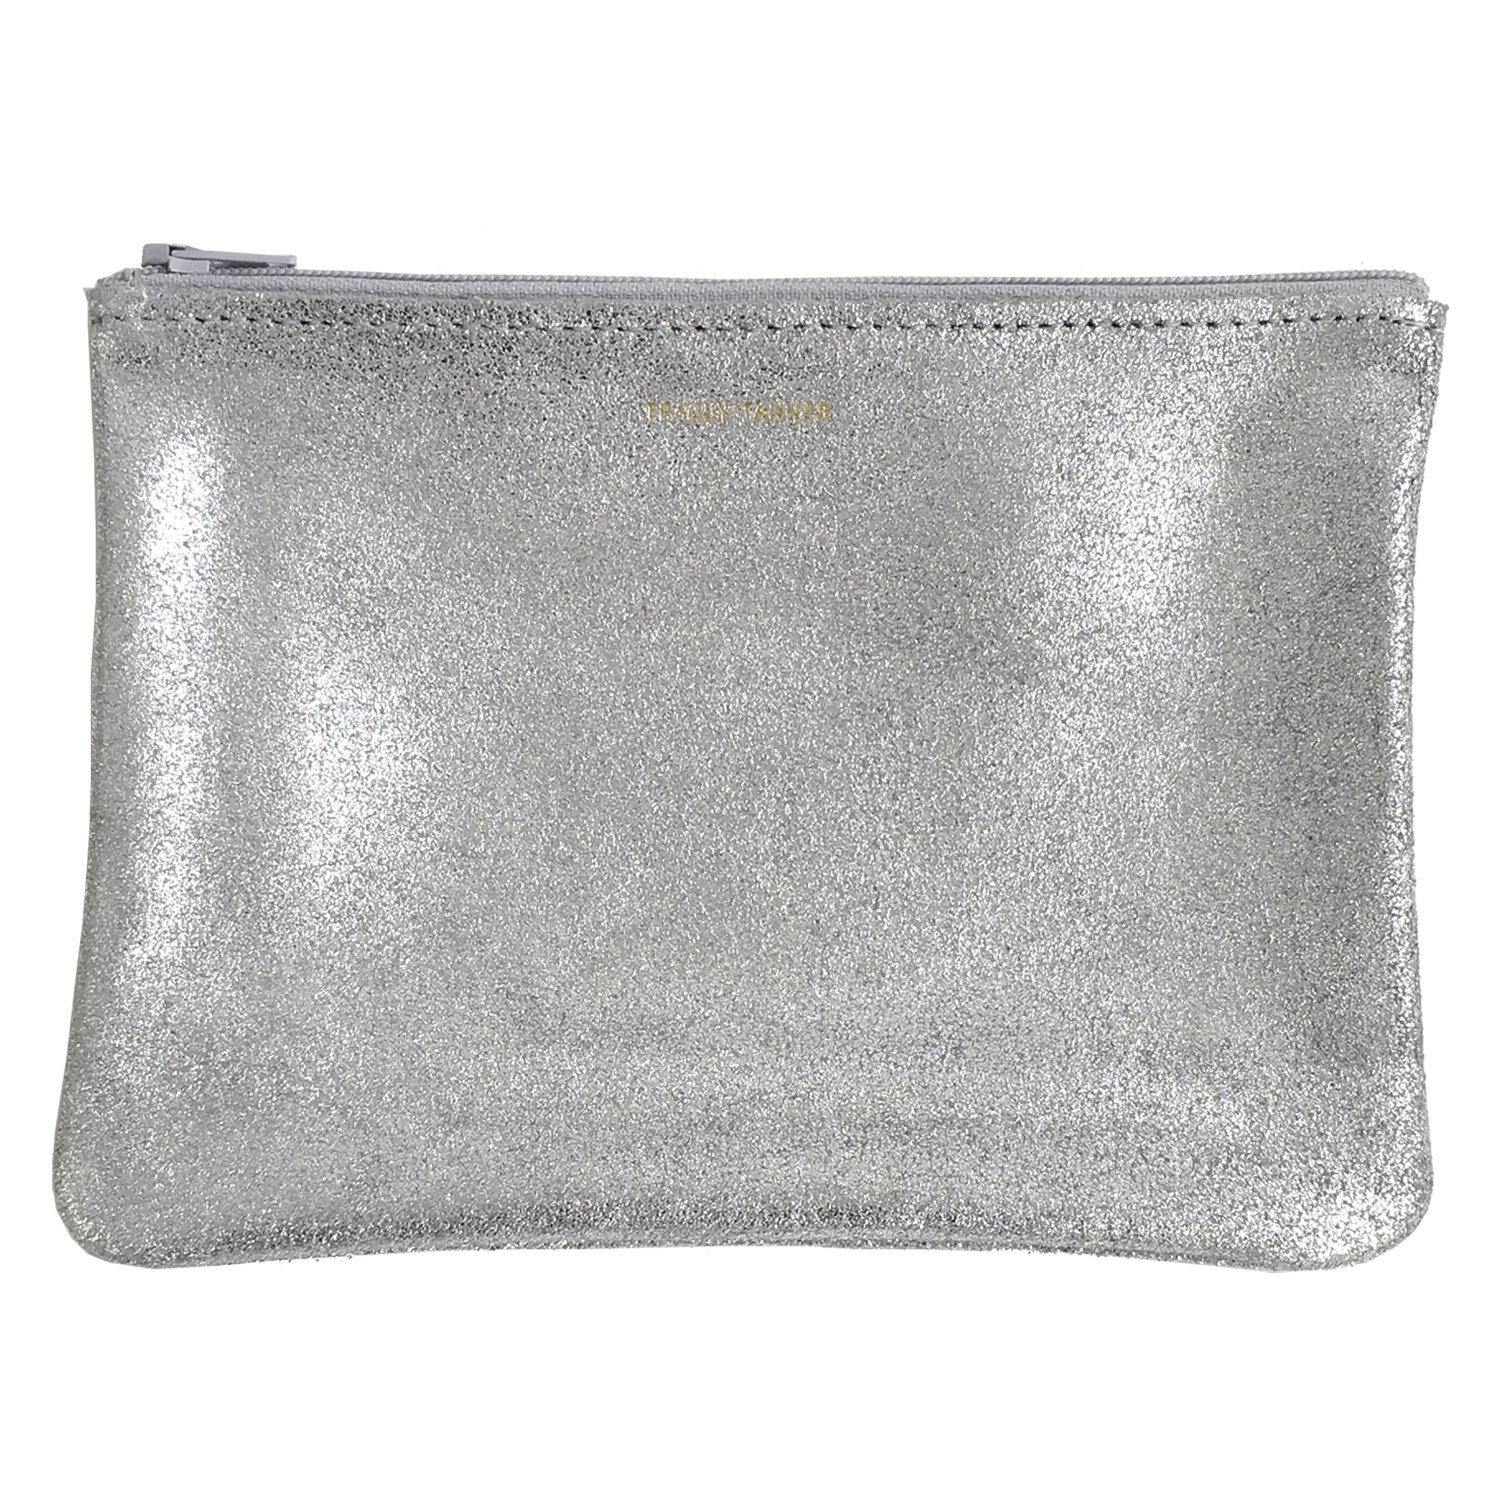 Tracey Tanner Medium Zipper Top Pouch - Frost Sparkle